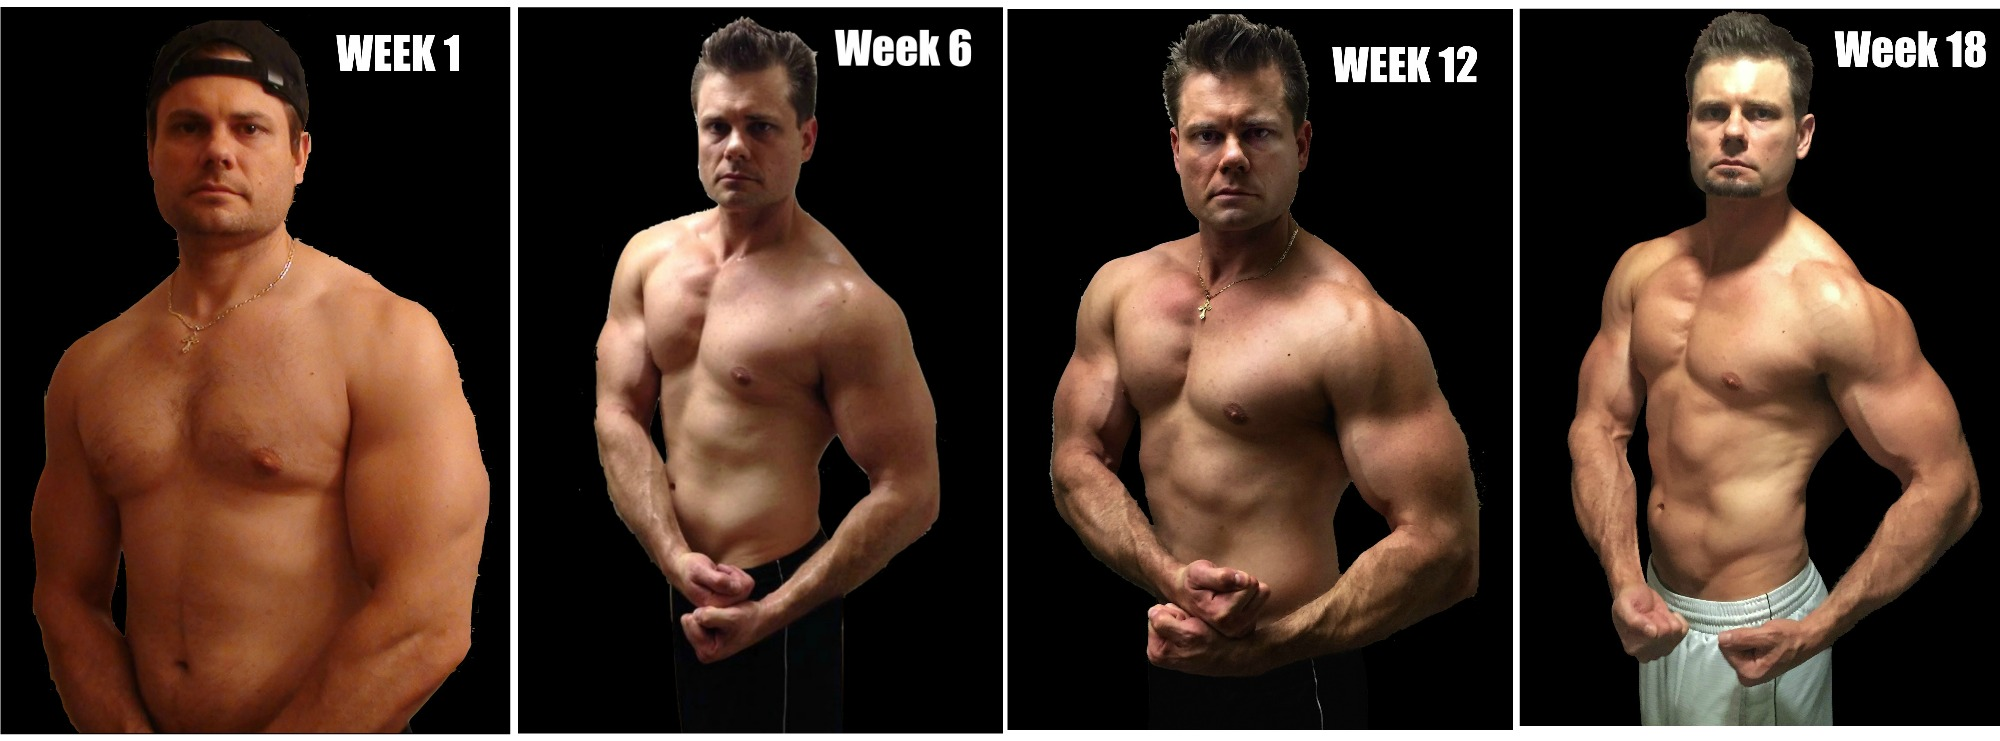 ATTENTION: Men, Do want MORE confidence by using a flexible diet and workout plan to lose 10-20-30 pounds of belly fat while building muscle simultaneously in just 12 weeks...WITHOUT starving yourself or living in the gym?